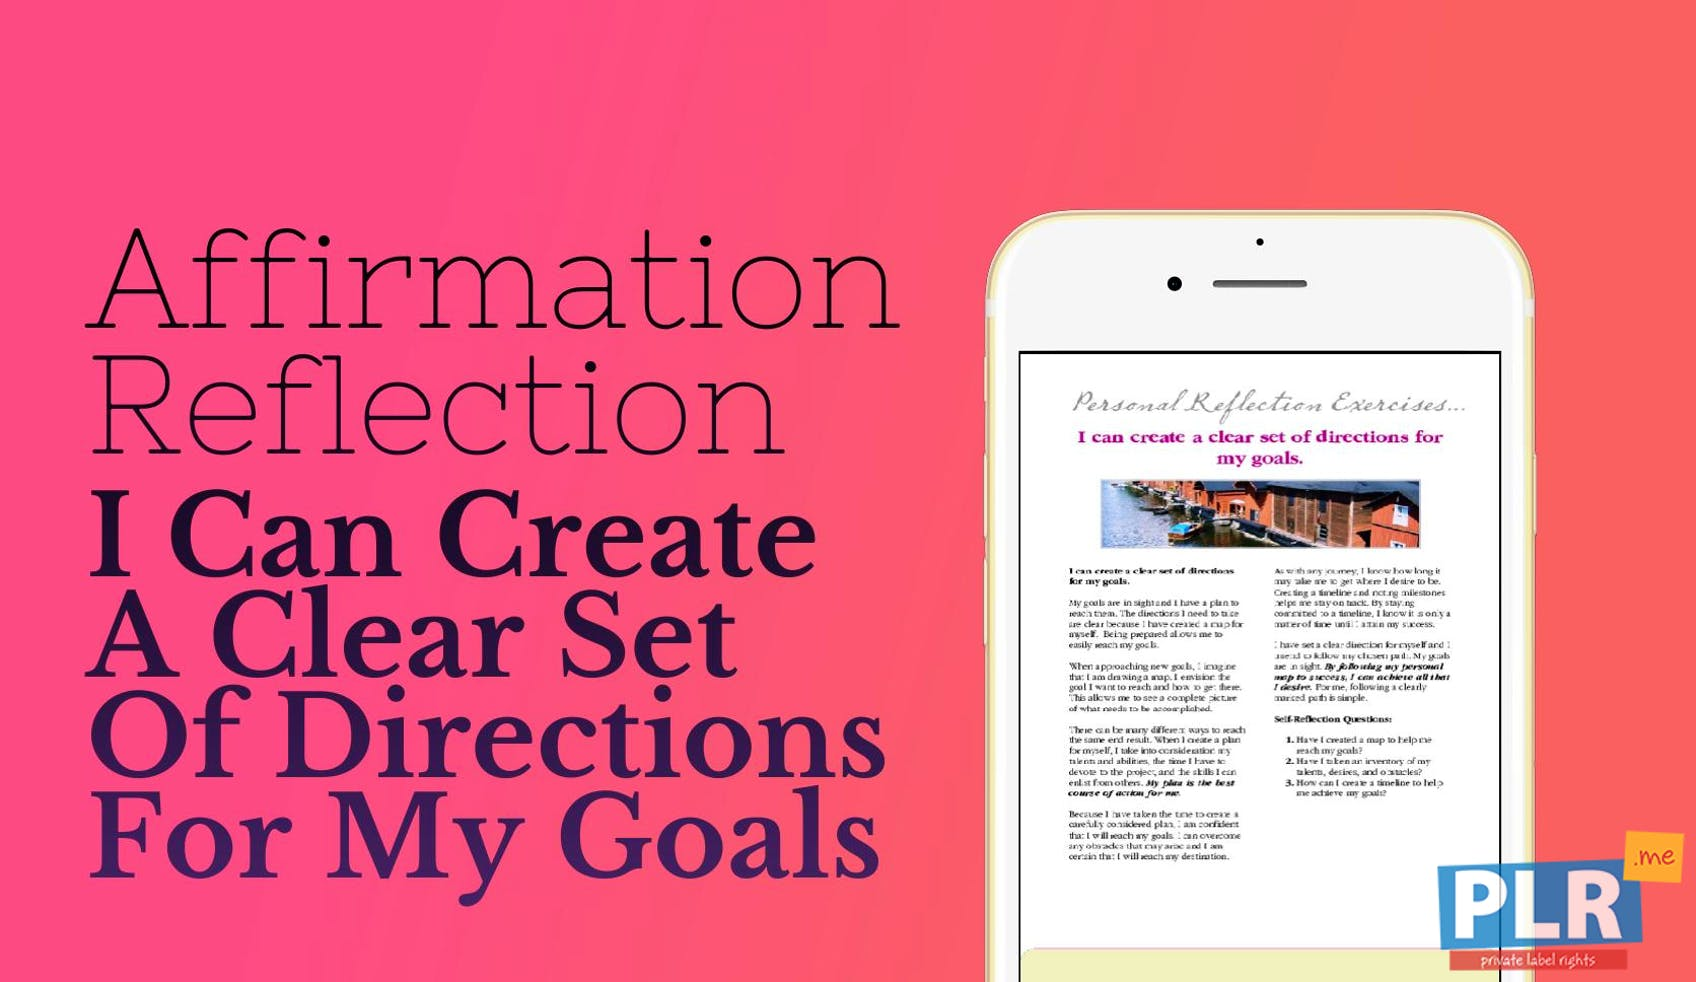 I Can Create A Clear Set Of Directions For My Goals